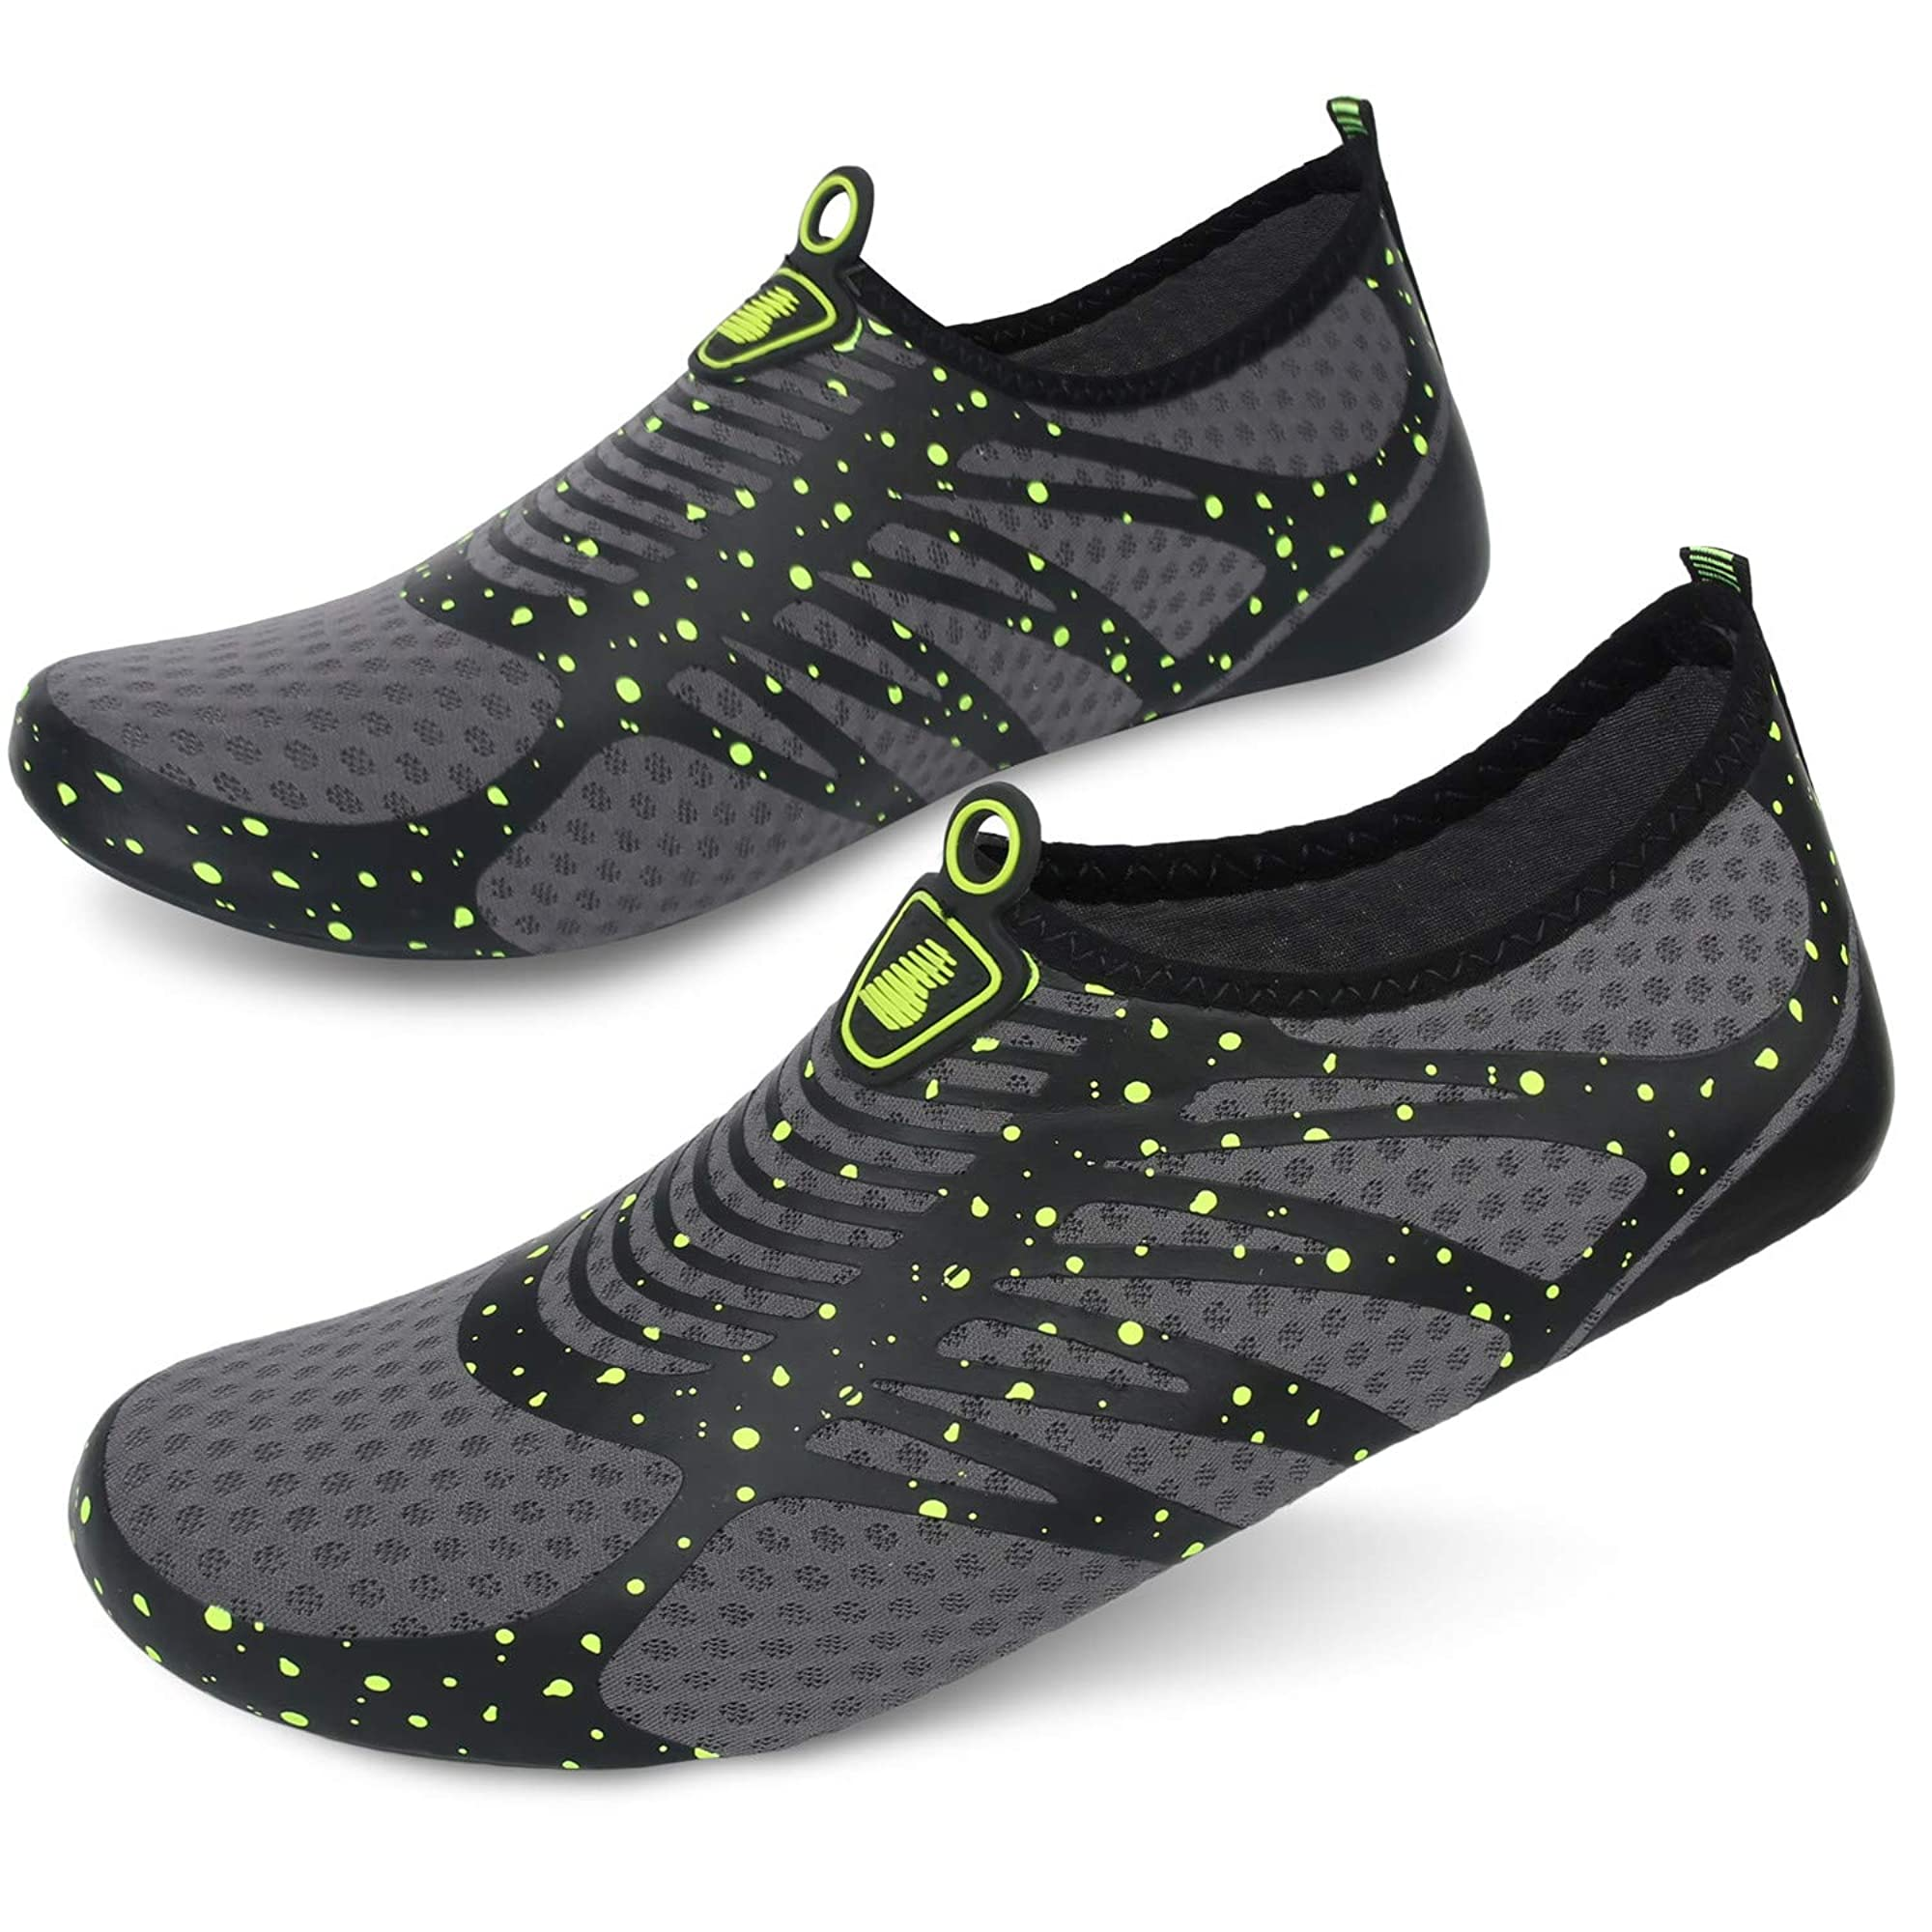 Outdoor Sports Barefoot Water Shoes